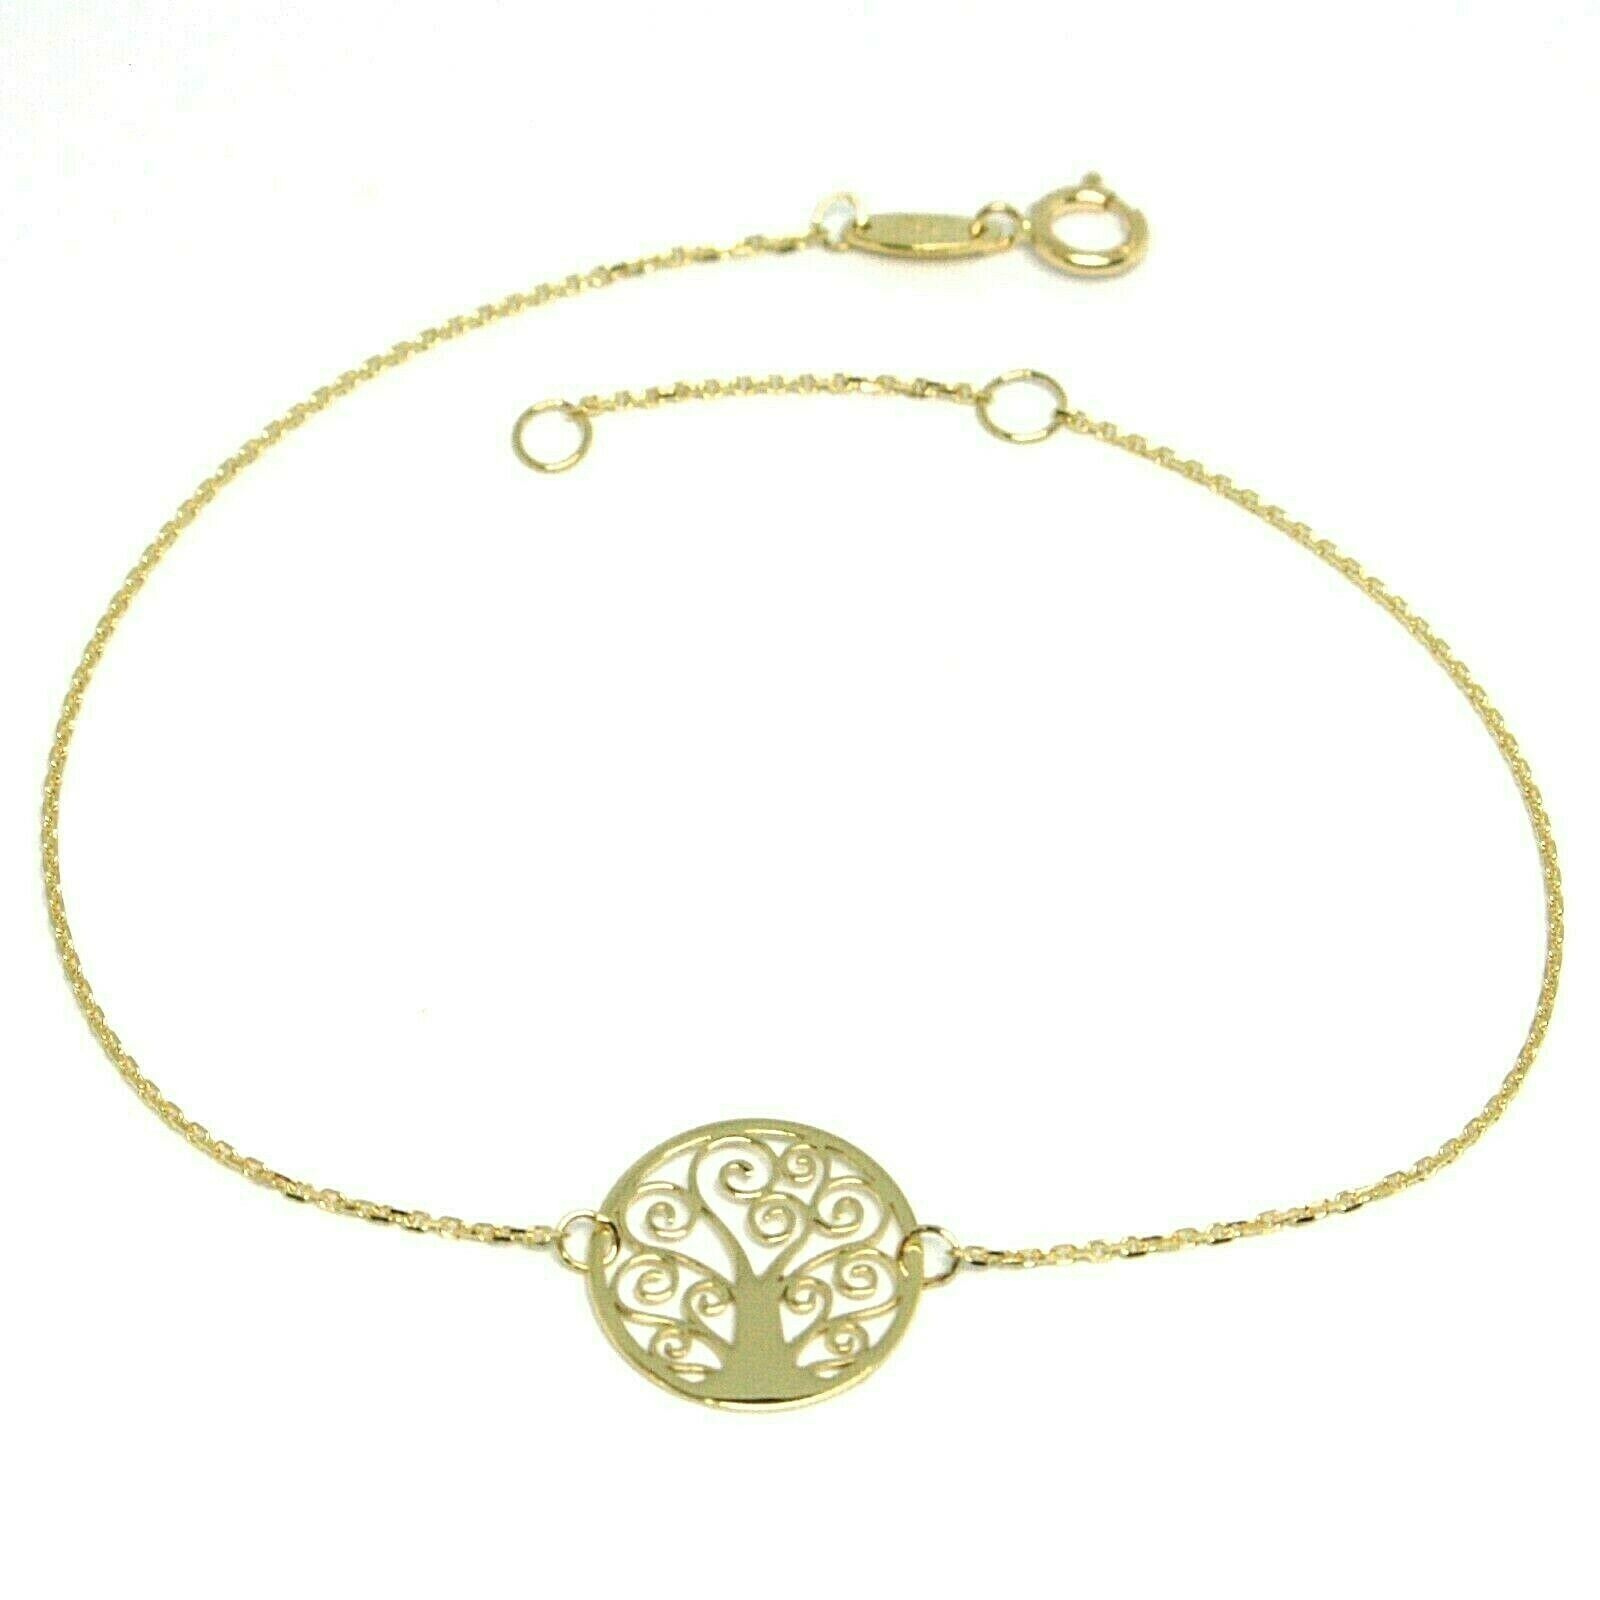 Mini Bracelet Yellow Gold 18k 750, Tree of Life, Central Perforated, 19 Cm